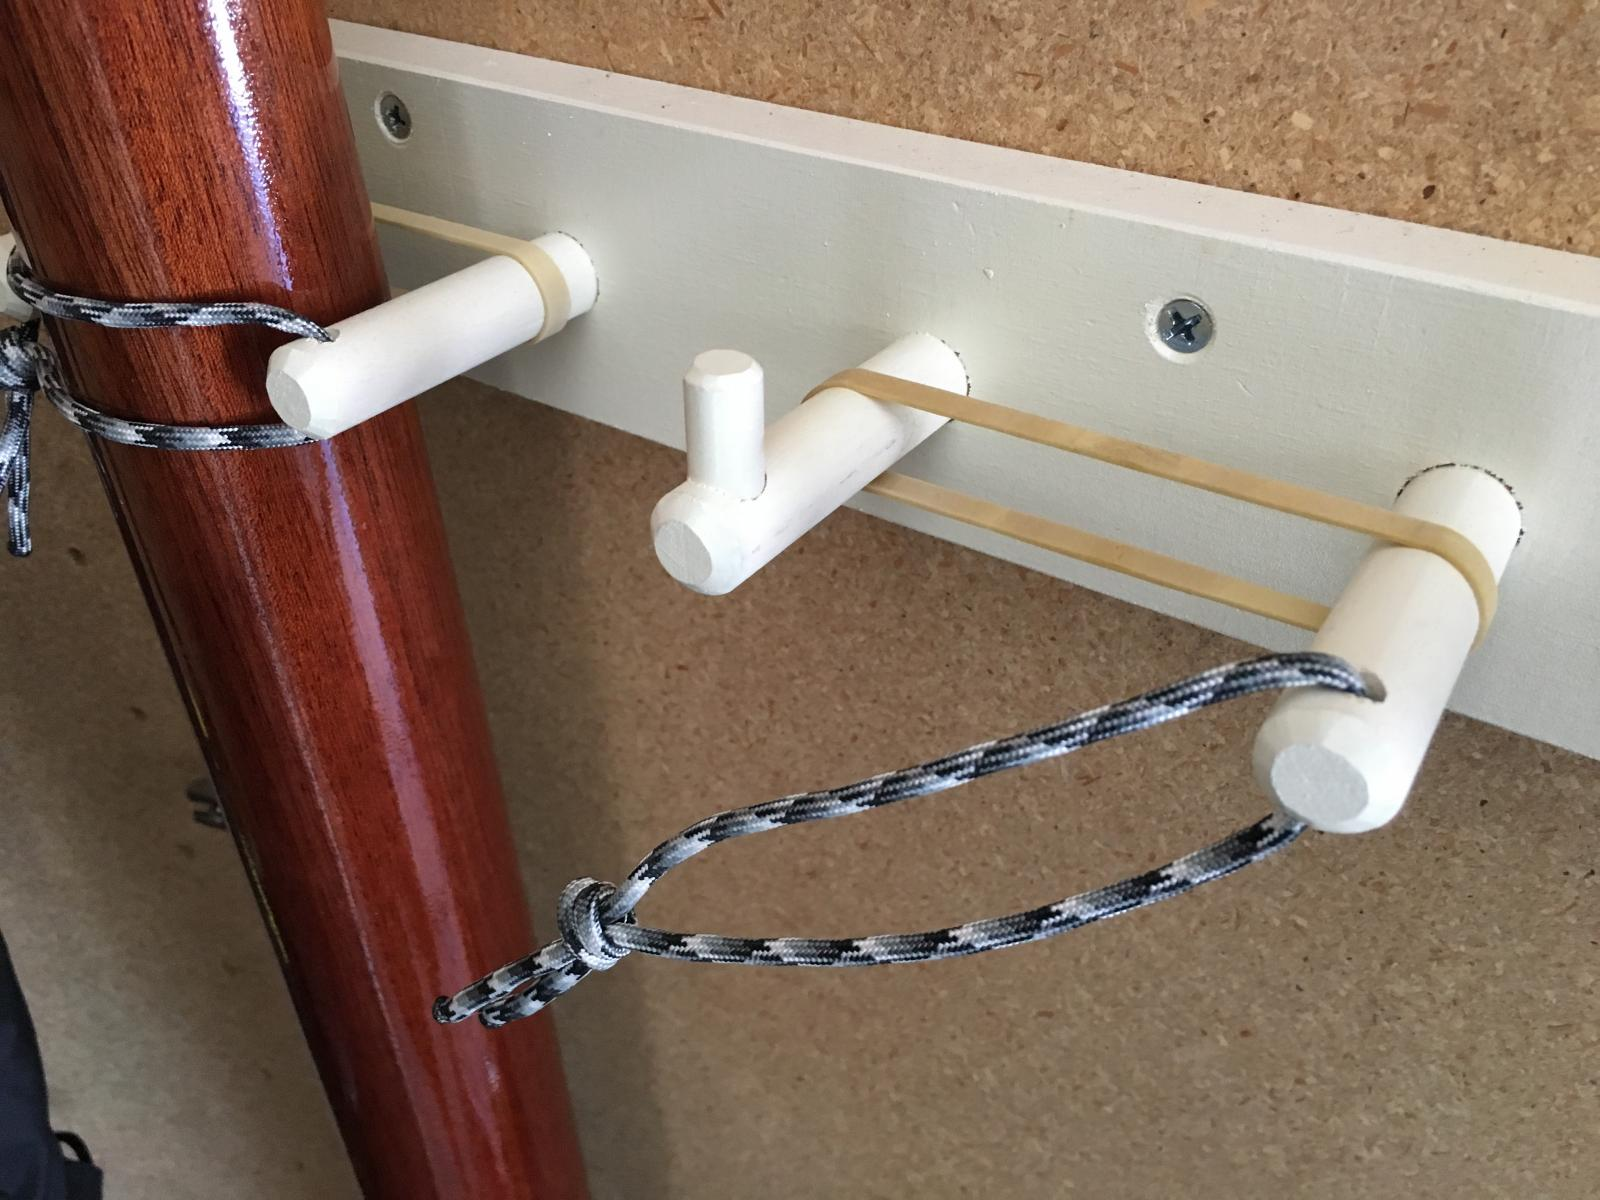 8 rack rubberband.JPG